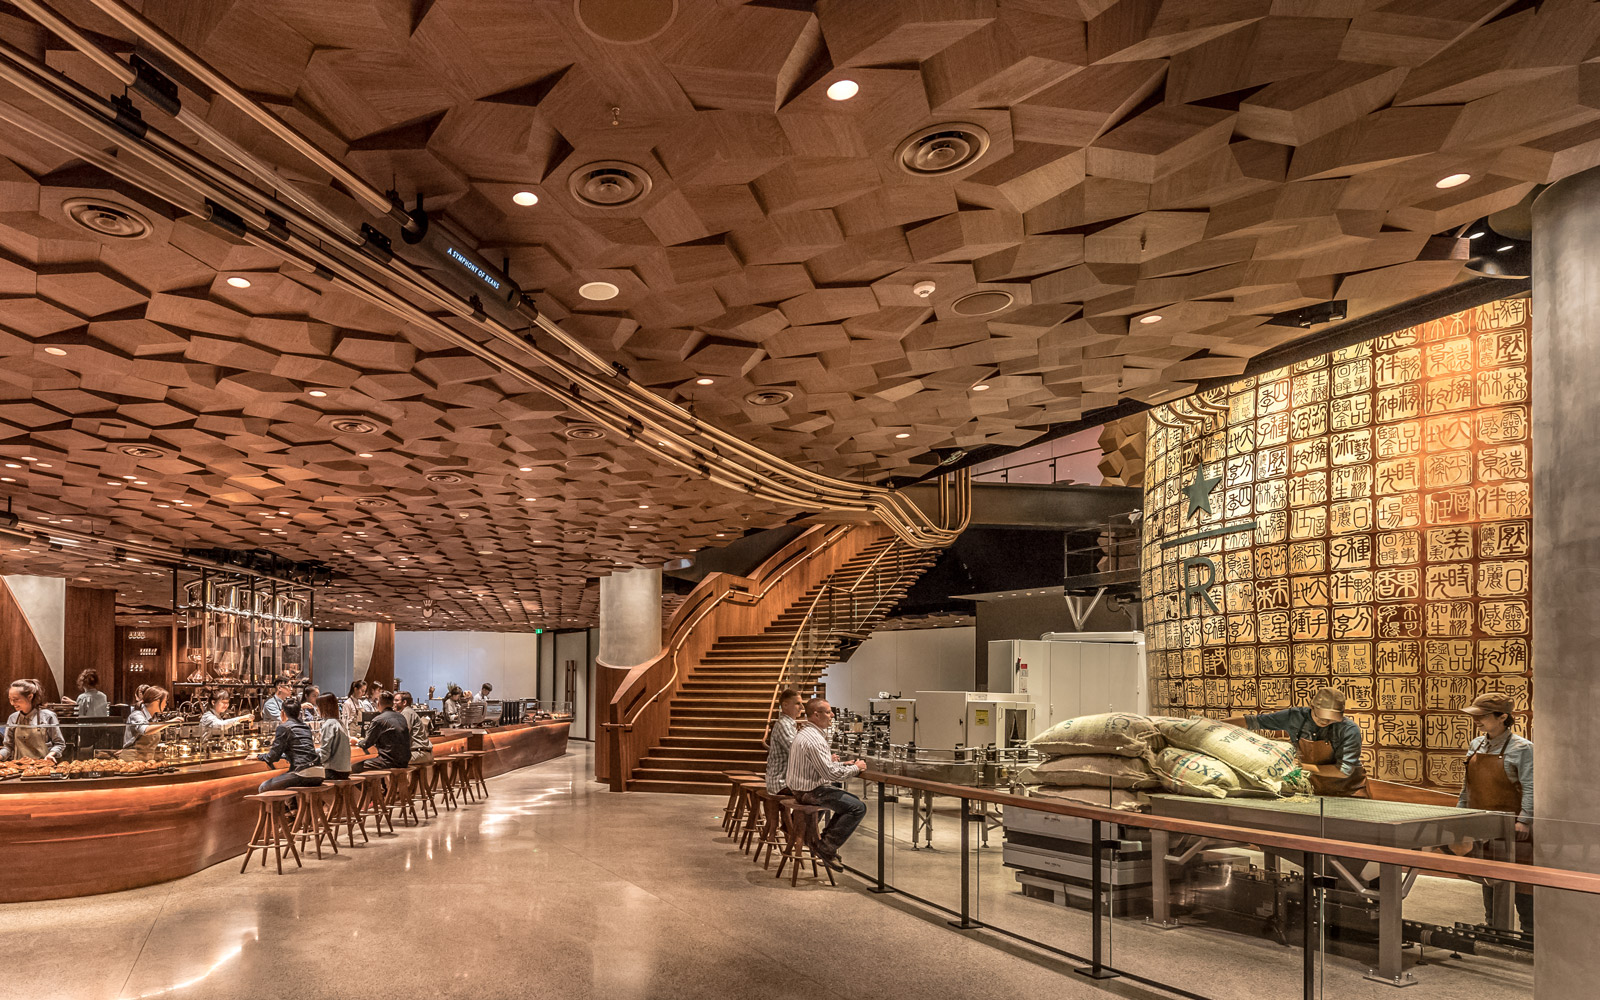 Starbucks Is Opening Their Largest Store Ever and It's Like a Willy Wonka Factory for Coffee